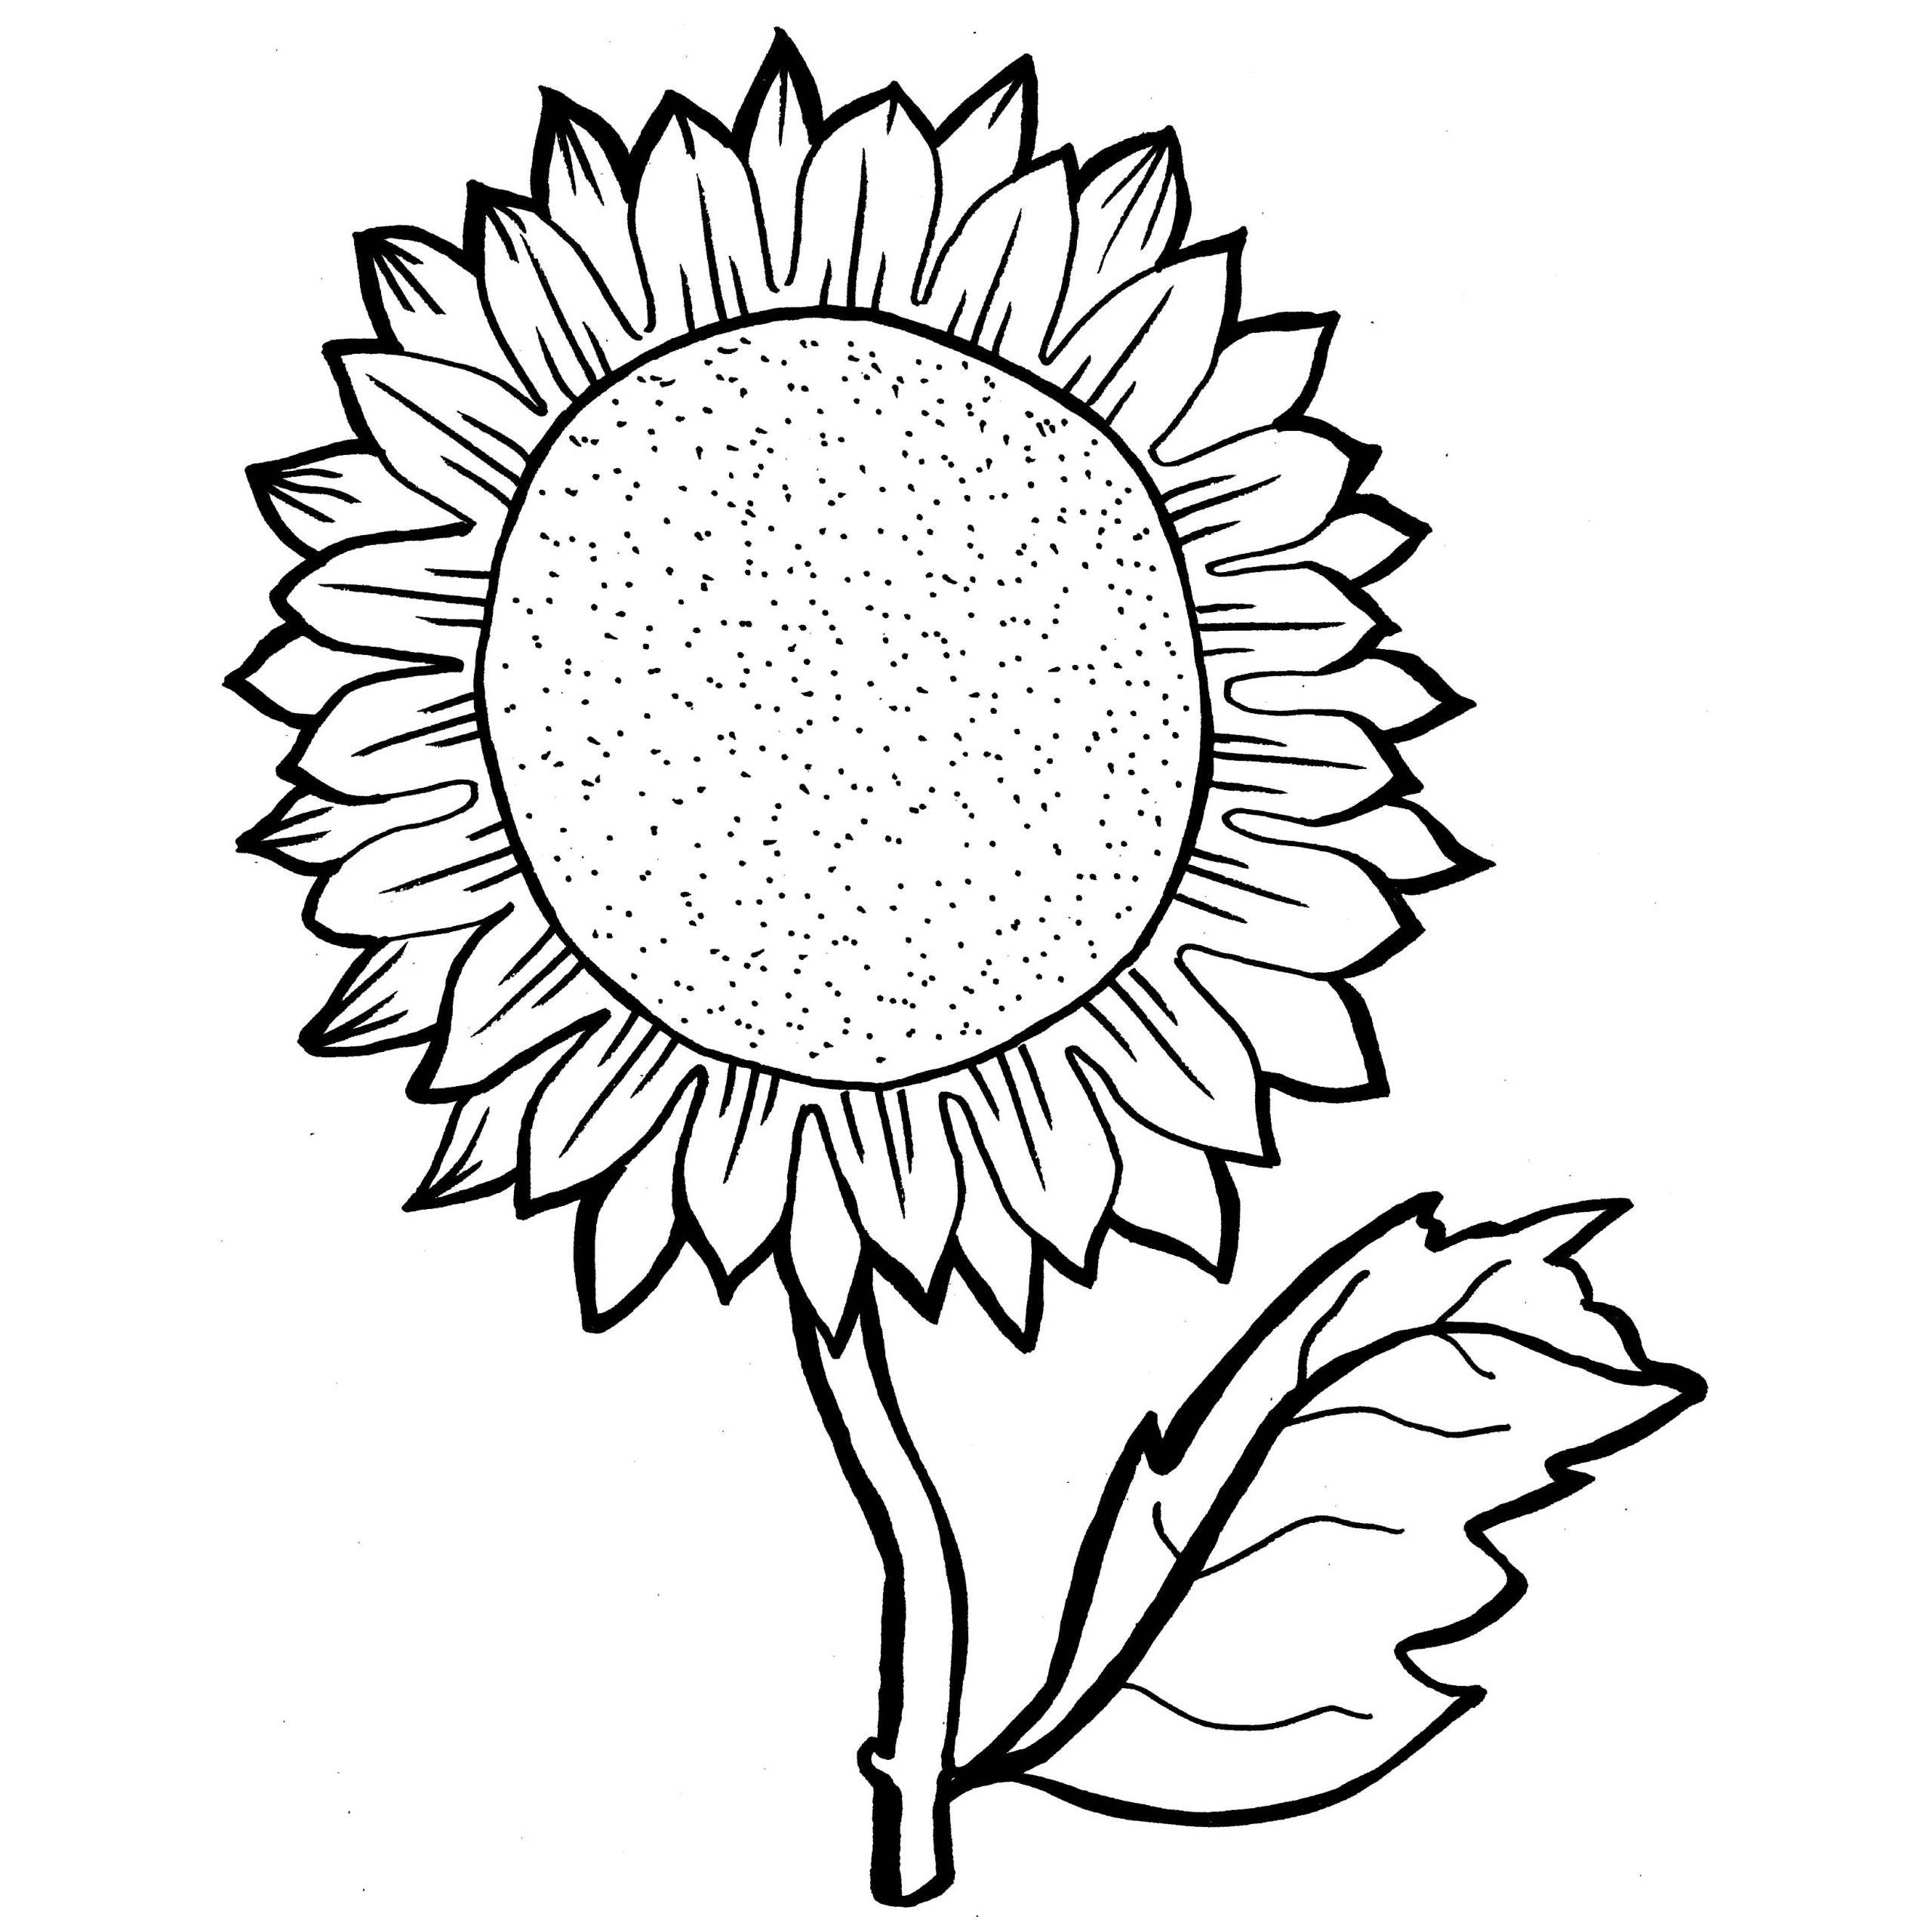 coloring sunflowers printable sunflower coloring page at getdrawings free download coloring printable sunflowers